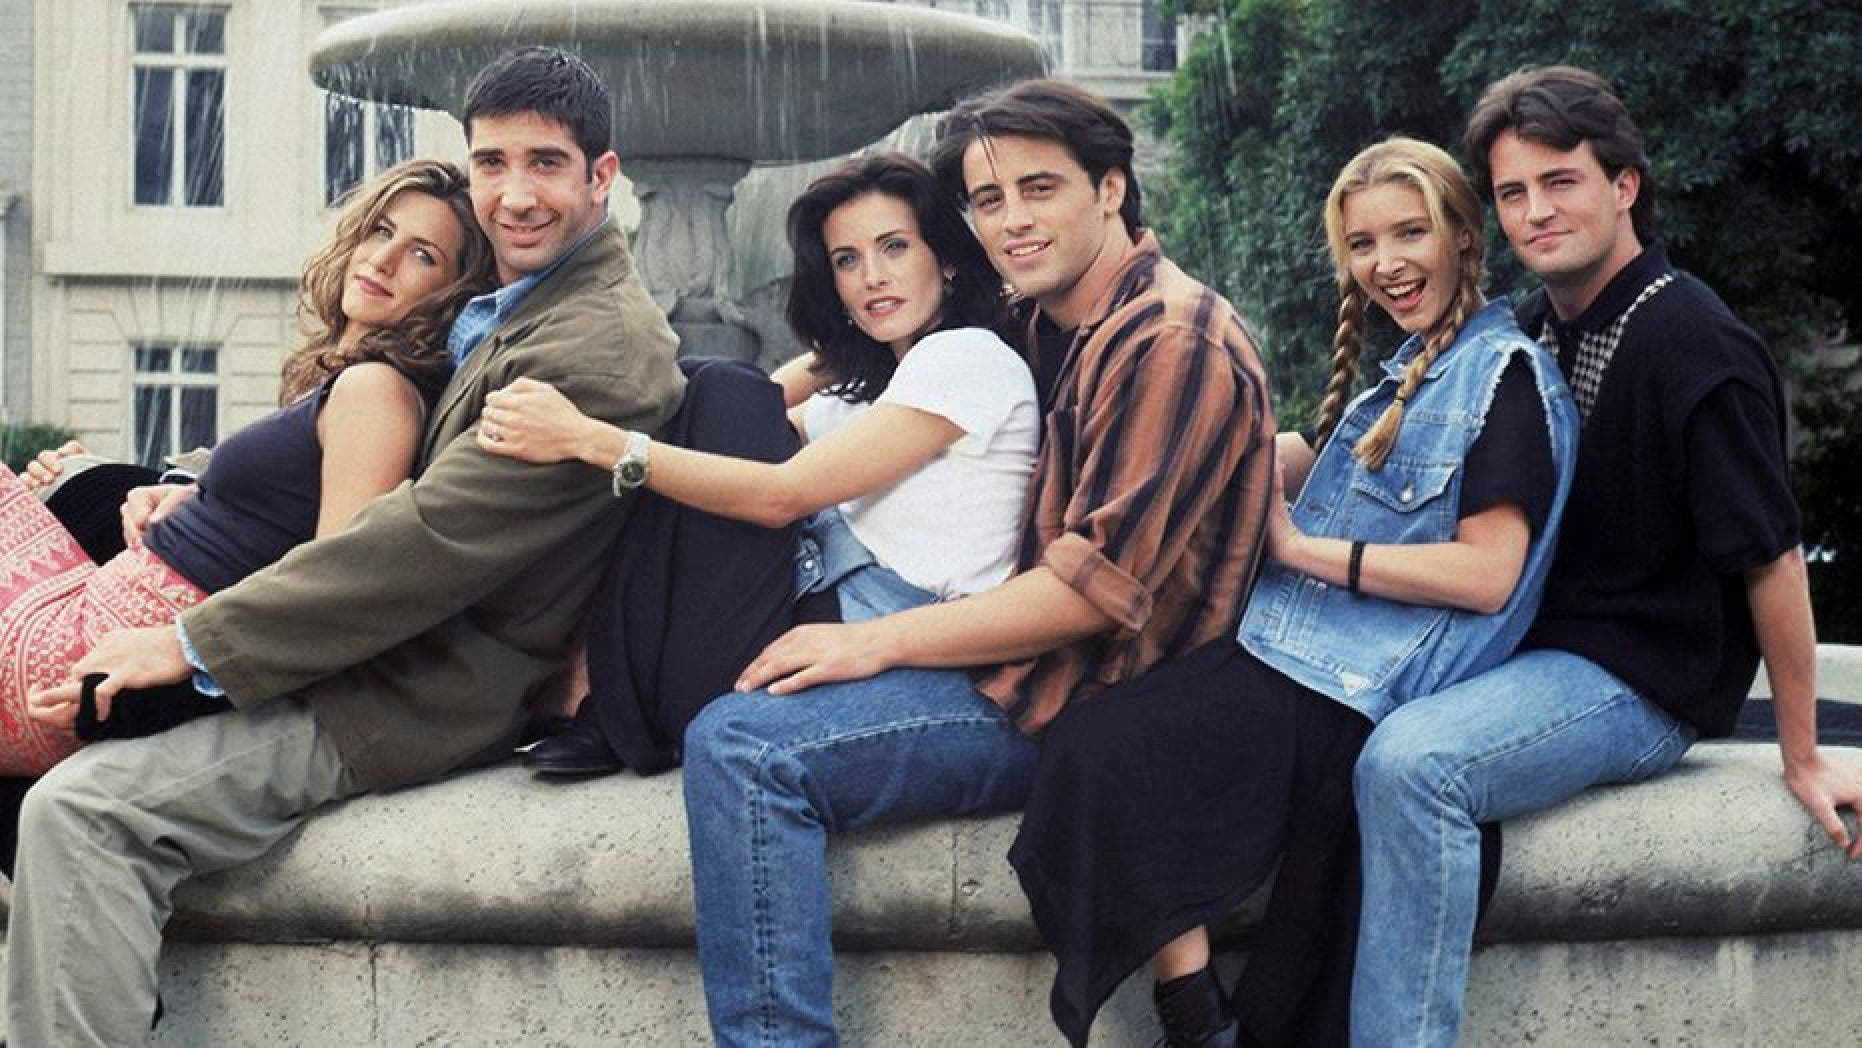 Jennifer Aniston as Rachel Green, David Schwimmer as Ross Geller, Courteney Cox as Monica Geller, Matt LeBlanc as Joey Tribbiani, Lisa Kudrow as Phoebe Buffay, Matthew Perry as Chandler Bing.